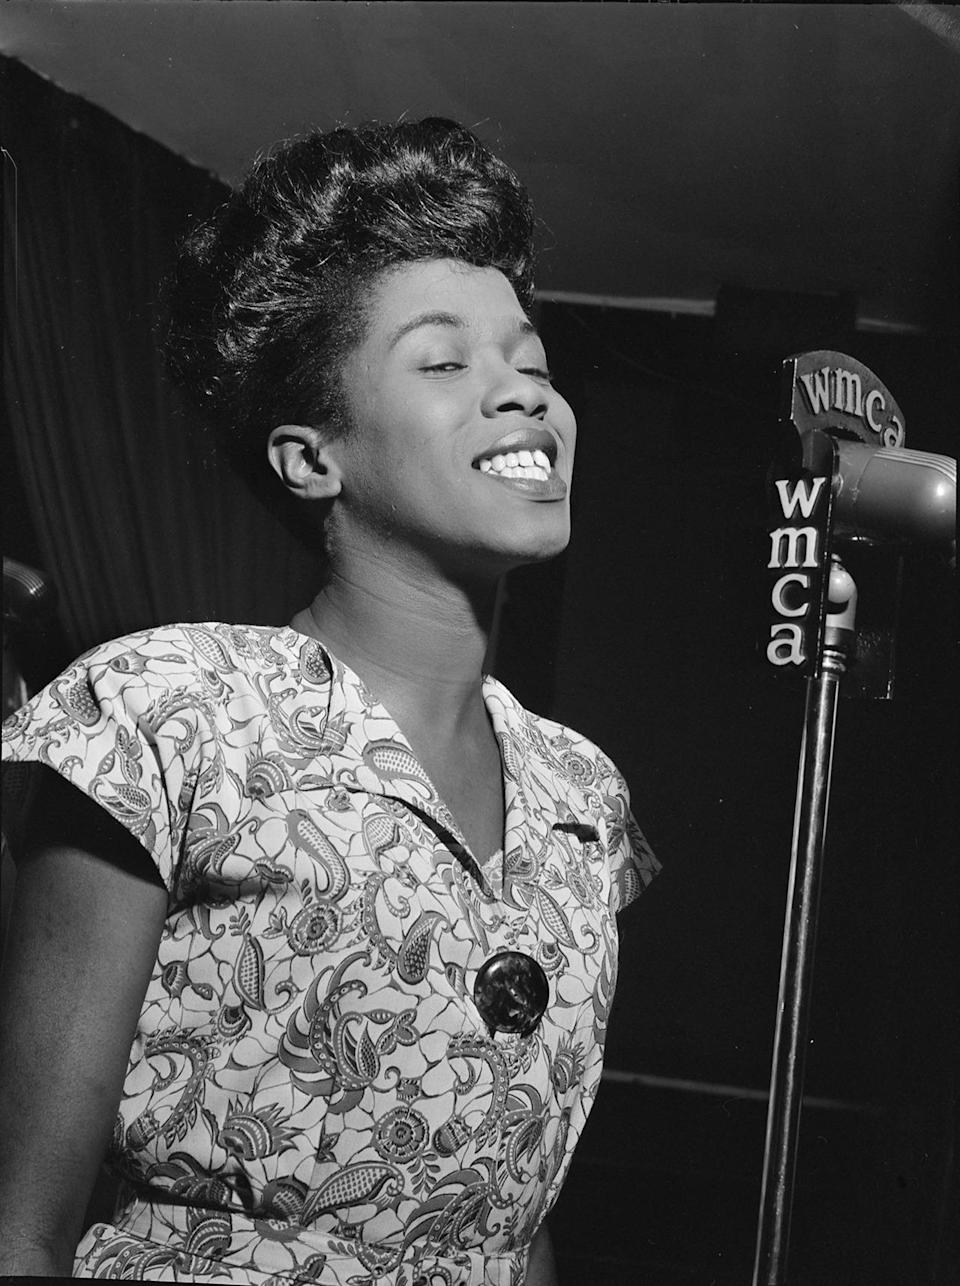 """<p>Jazz singer Sarah Vaughan (aka """"Sassy"""" or """"The Divine One"""") has been described as having one of """"the most wondrous voices of the 20th century"""" <a href=""""http://www.allmusic.com/artist/sarah-vaughan-mn0000204901/biography"""" rel=""""nofollow noopener"""" target=""""_blank"""" data-ylk=""""slk:by music critic Scott Yanow"""" class=""""link rapid-noclick-resp"""">by music critic Scott Yanow</a> — and we won't argue. <a href=""""https://www.youtube.com/watch?v=yJ-9IBZaydQ"""" rel=""""nofollow noopener"""" target=""""_blank"""" data-ylk=""""slk:In a now-iconic live recording made in Europe in 1964"""" class=""""link rapid-noclick-resp"""">In a now-iconic live recording made in Europe in 1964</a>, Vaughan took the stage nervously """"with a cold,"""" but the moment she began singing the classic tune """"Misty,"""" the audience was transcended into musical bliss. She was a class act — always immaculately made up and wearing in stylish, form-fitting dresses. <i>(Photo: Getty Images)</i></p>"""